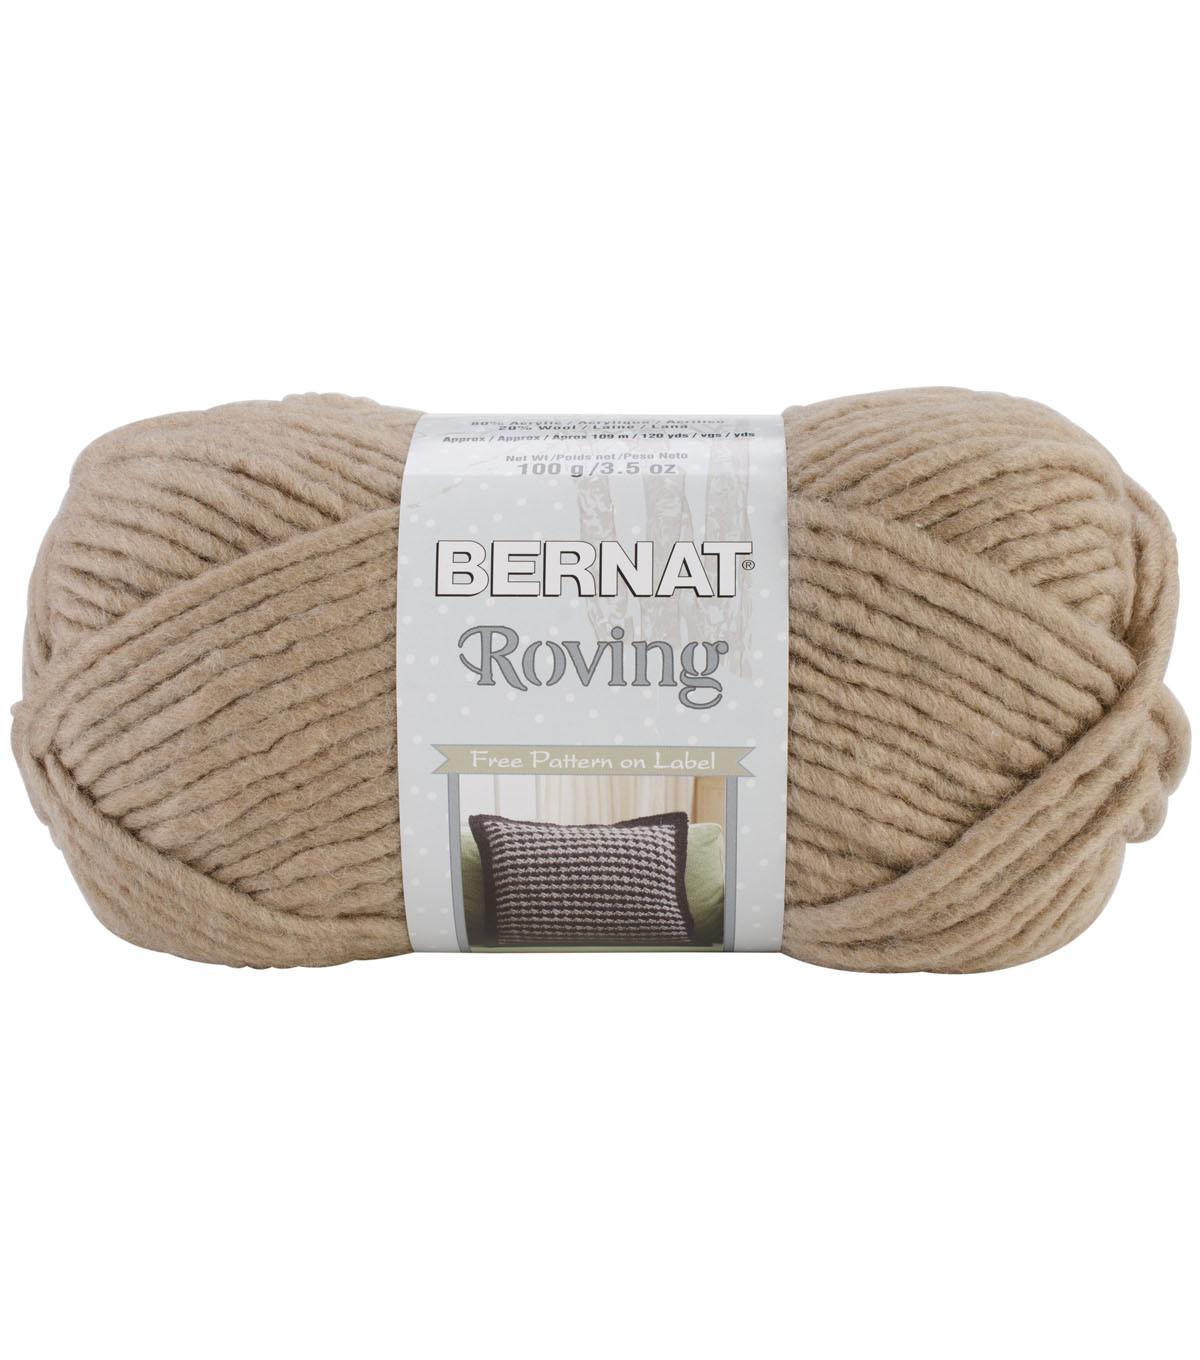 Awesome Bernat Roving Yarn Bernat Roving Yarn Of Gorgeous 50 Models Bernat Roving Yarn